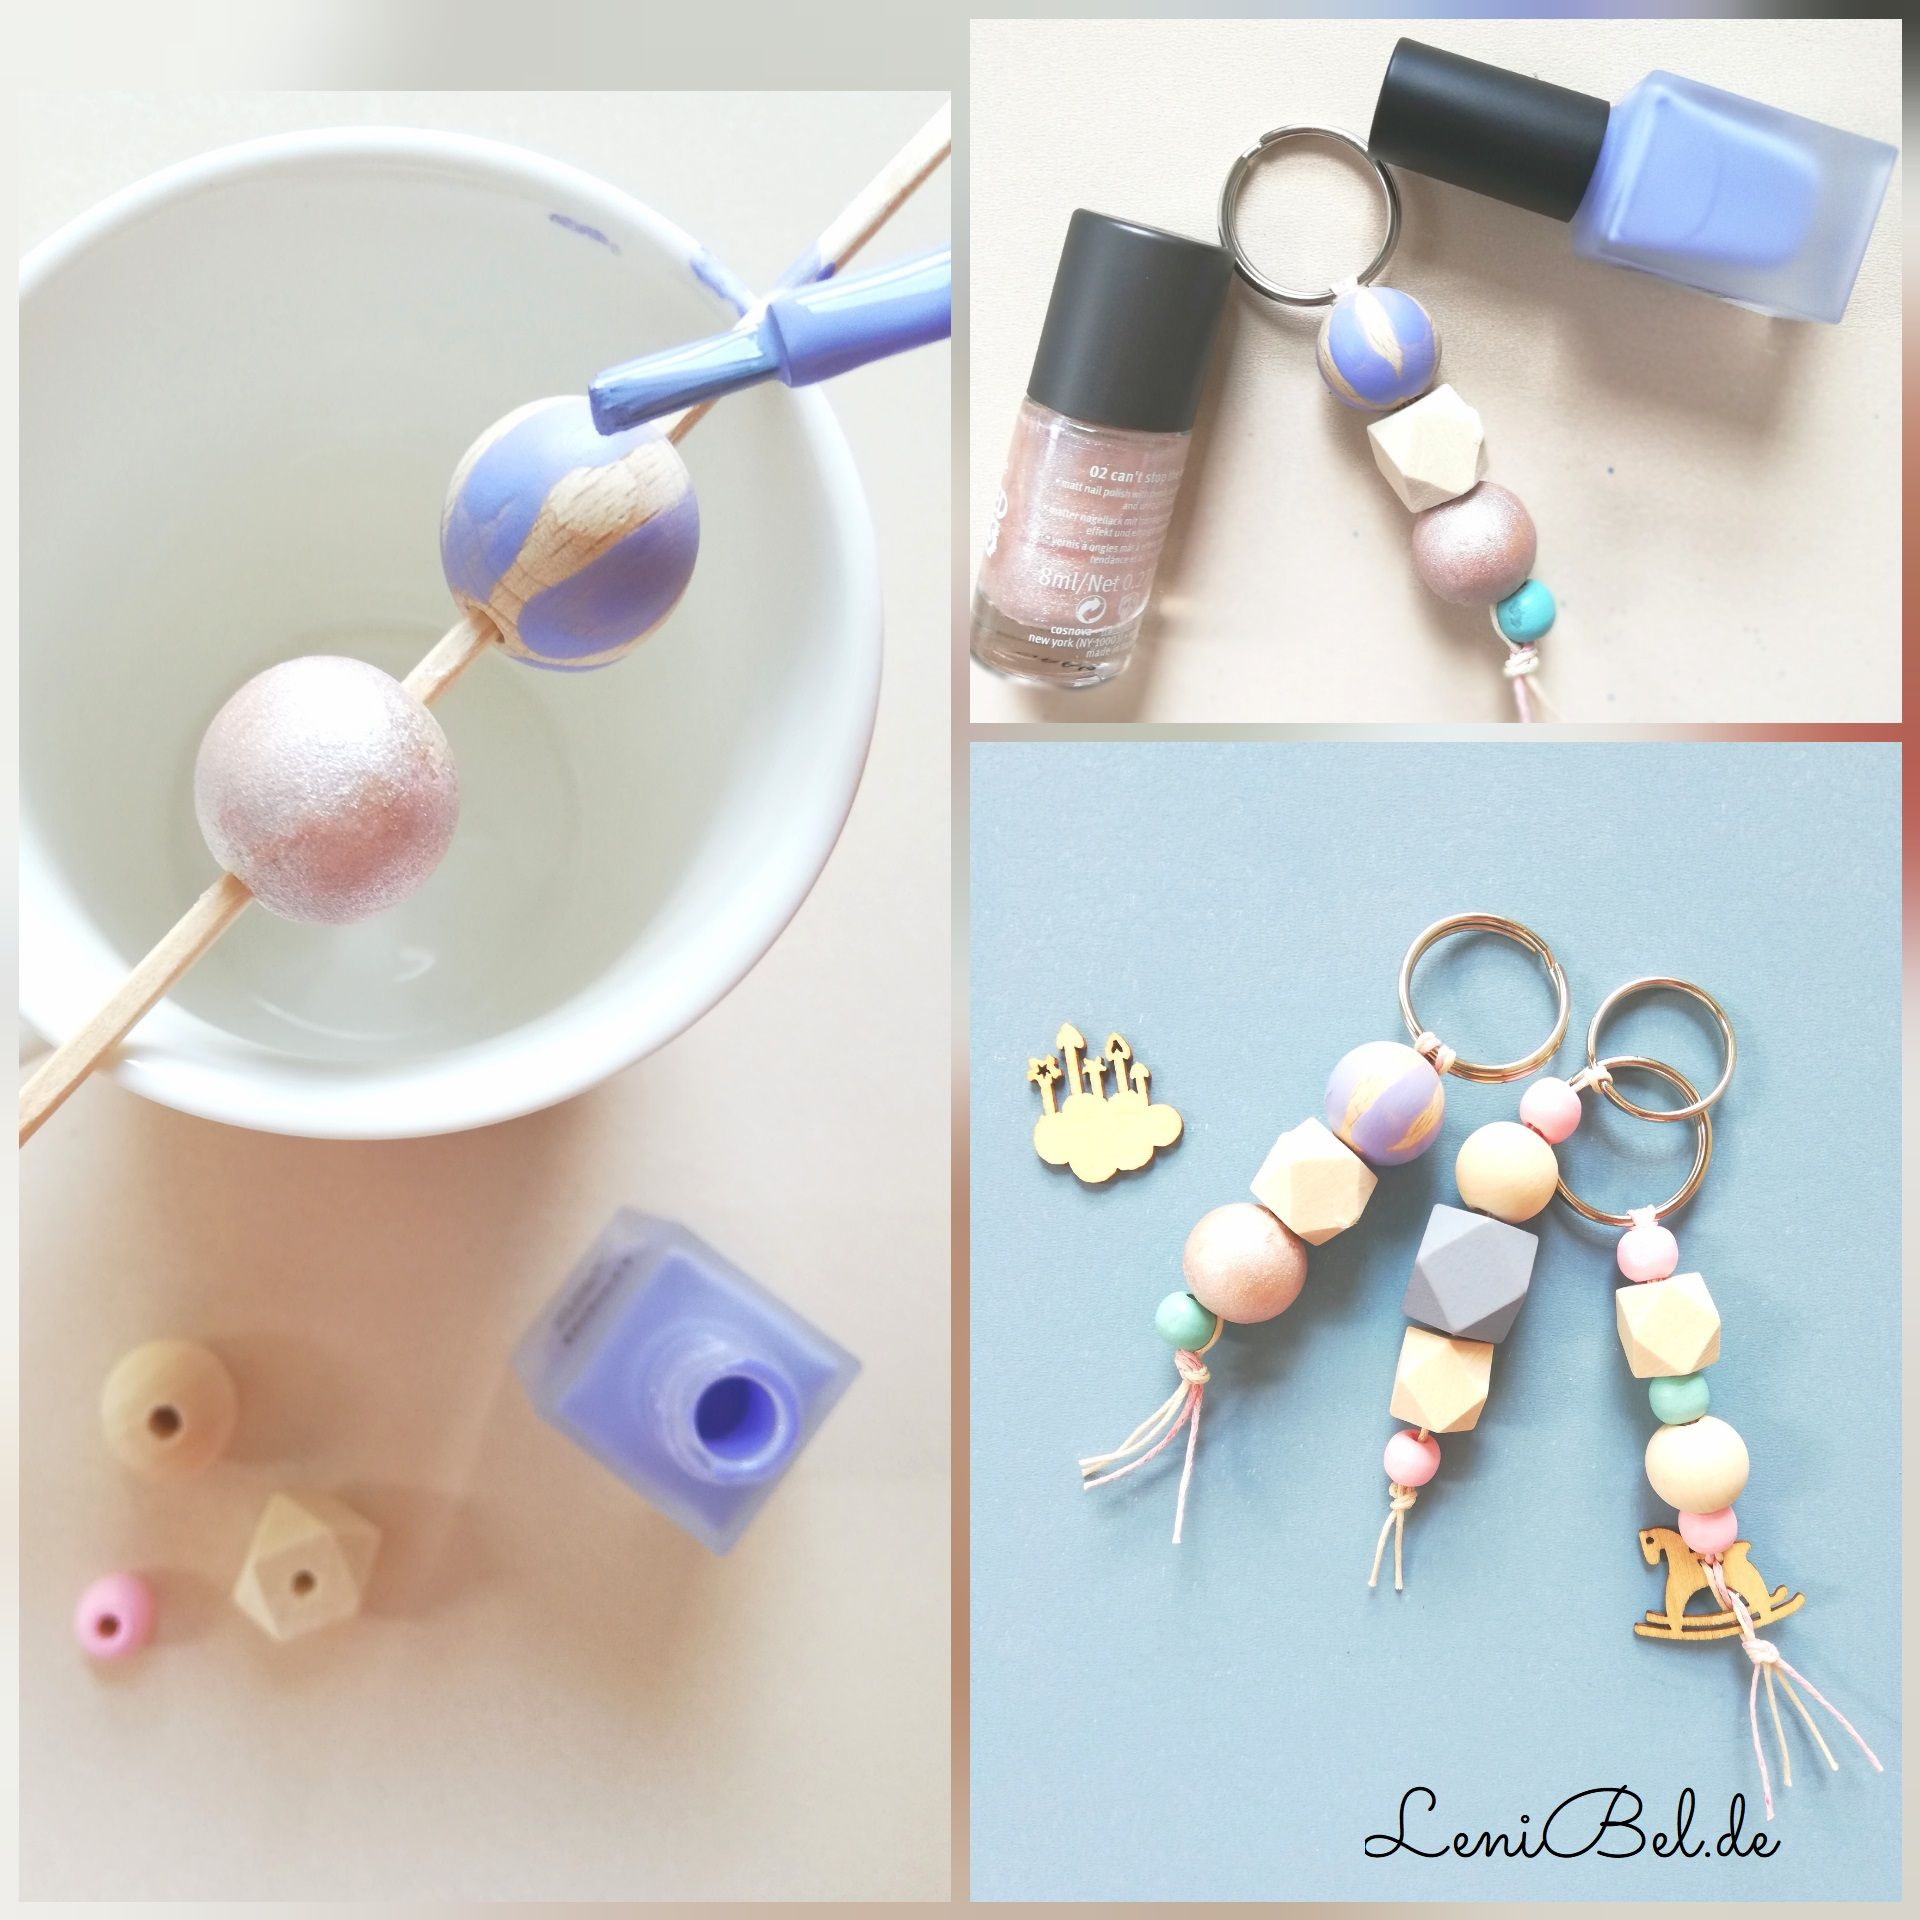 Photo of Keychain DIY with wooden beads and nail polish